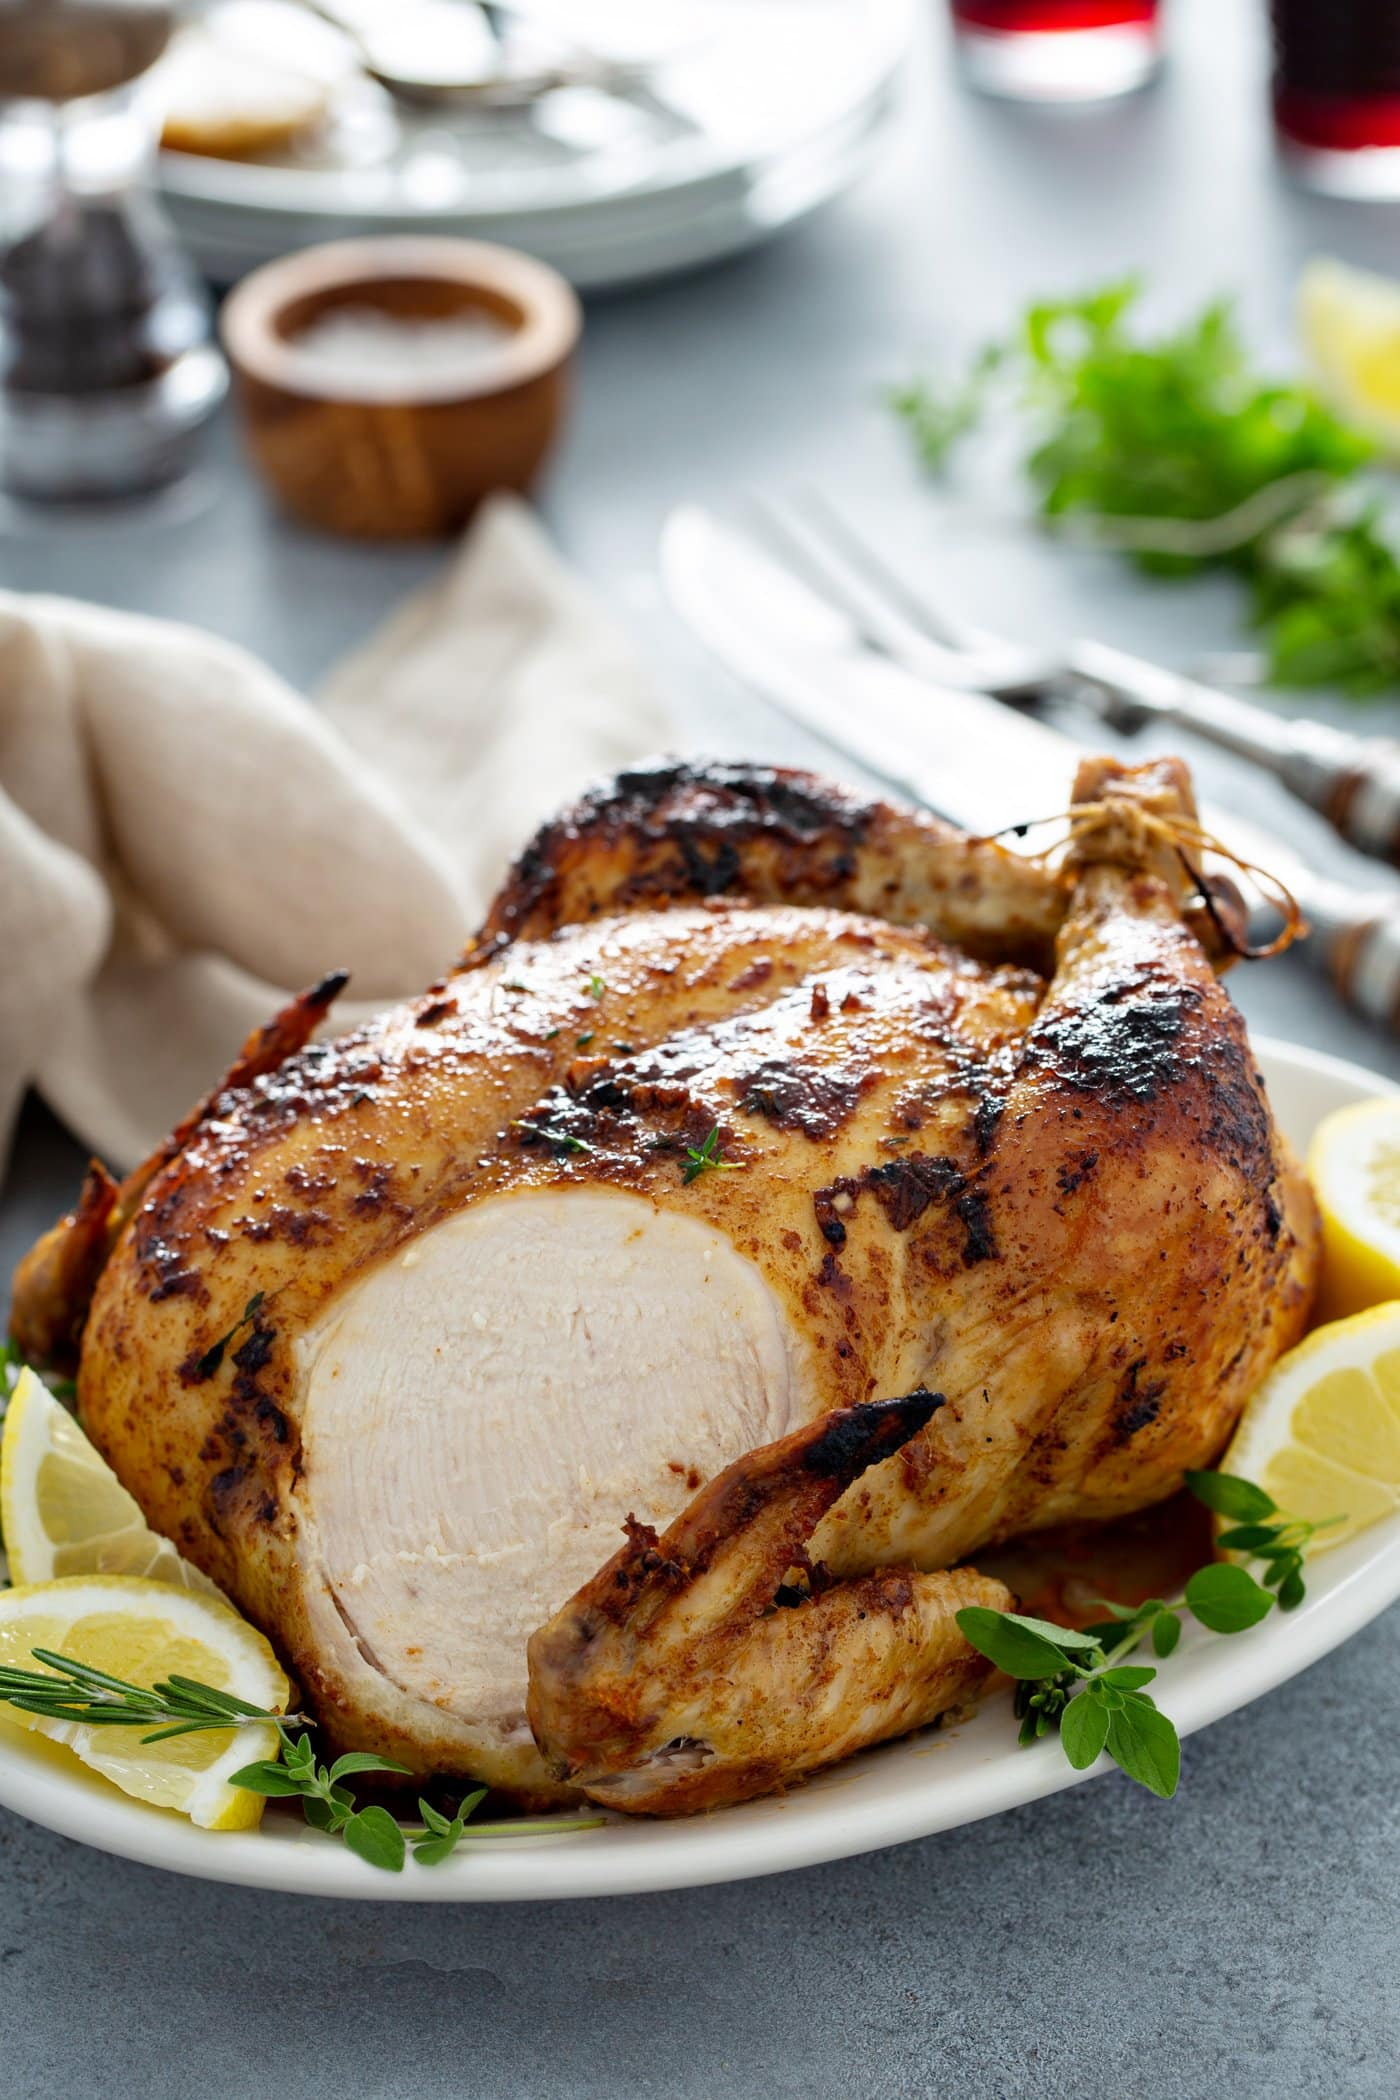 A whole roasted chicken with a slice from the breast. It is sitting on a white platter surrounded by fresh thyme and lemon wedges. There is a knife and fork, a linen napkin, salt, pepper and fresh thyme on the table next to the chicken.